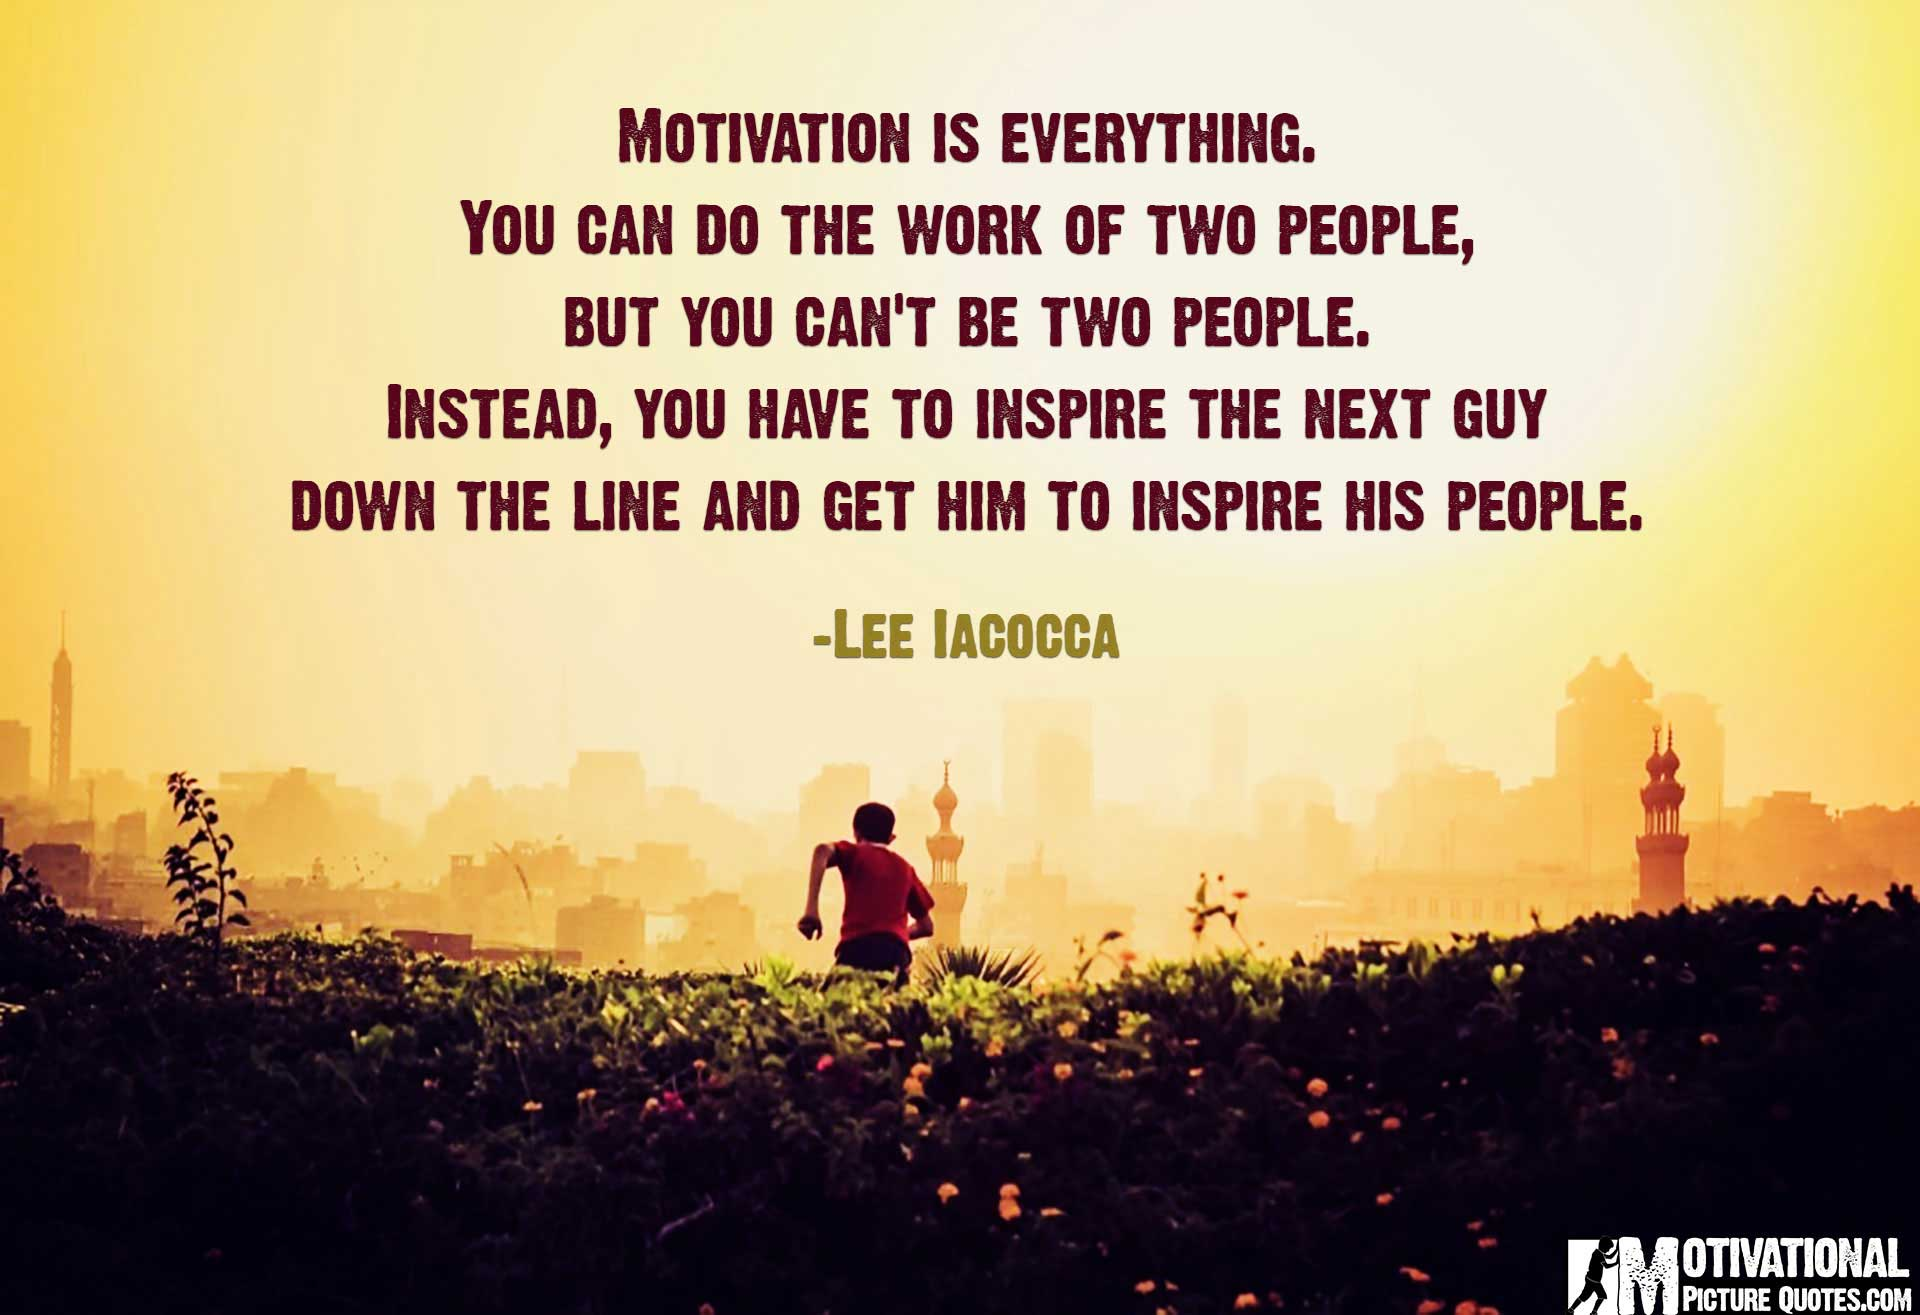 Lee Iacocca Inspirational Quotes About Motivation And Success